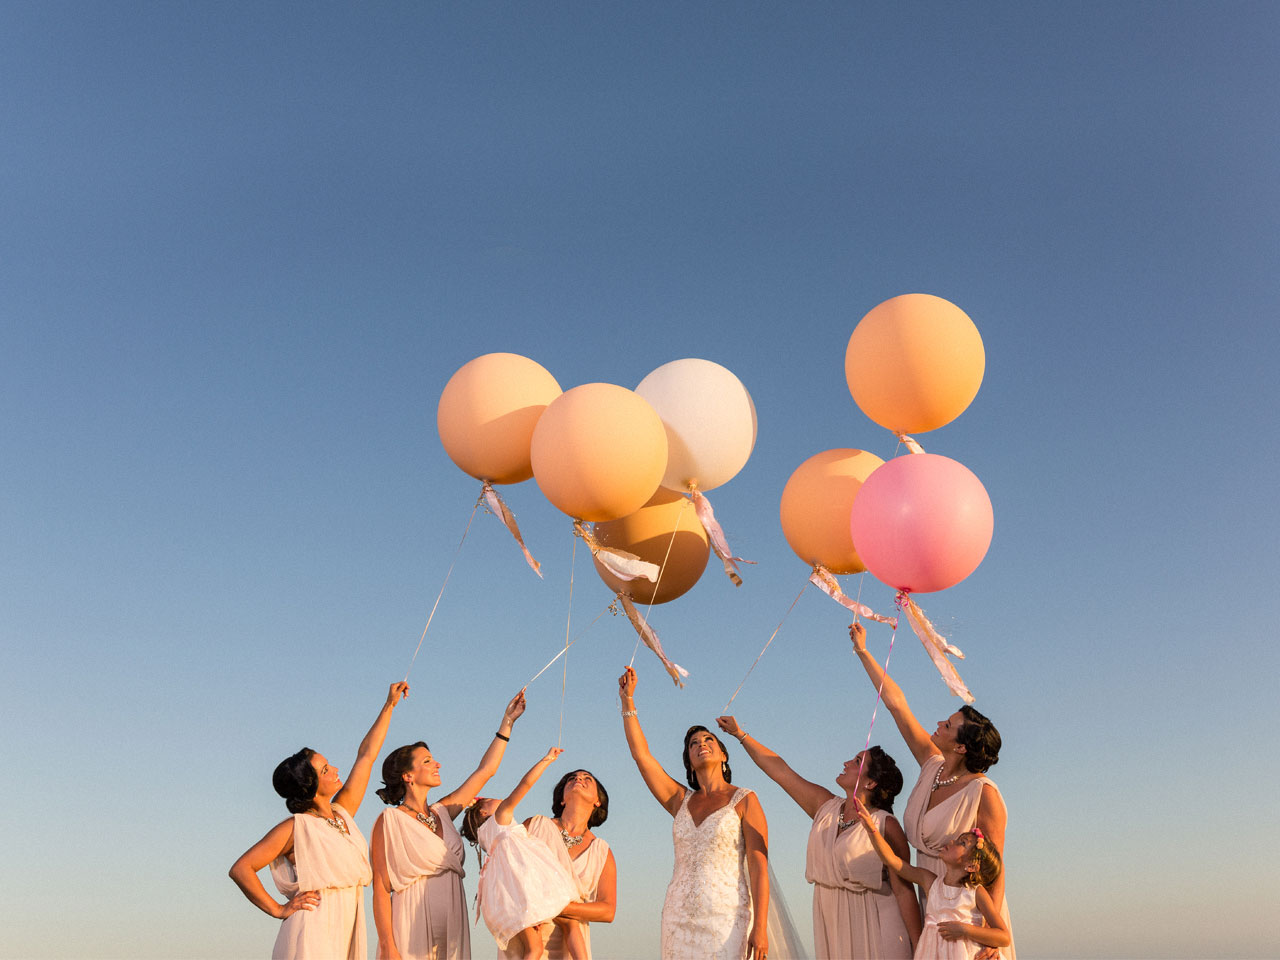 A snap shot of the bride and her bridesmaids releasing balloons on the beach in Mexico